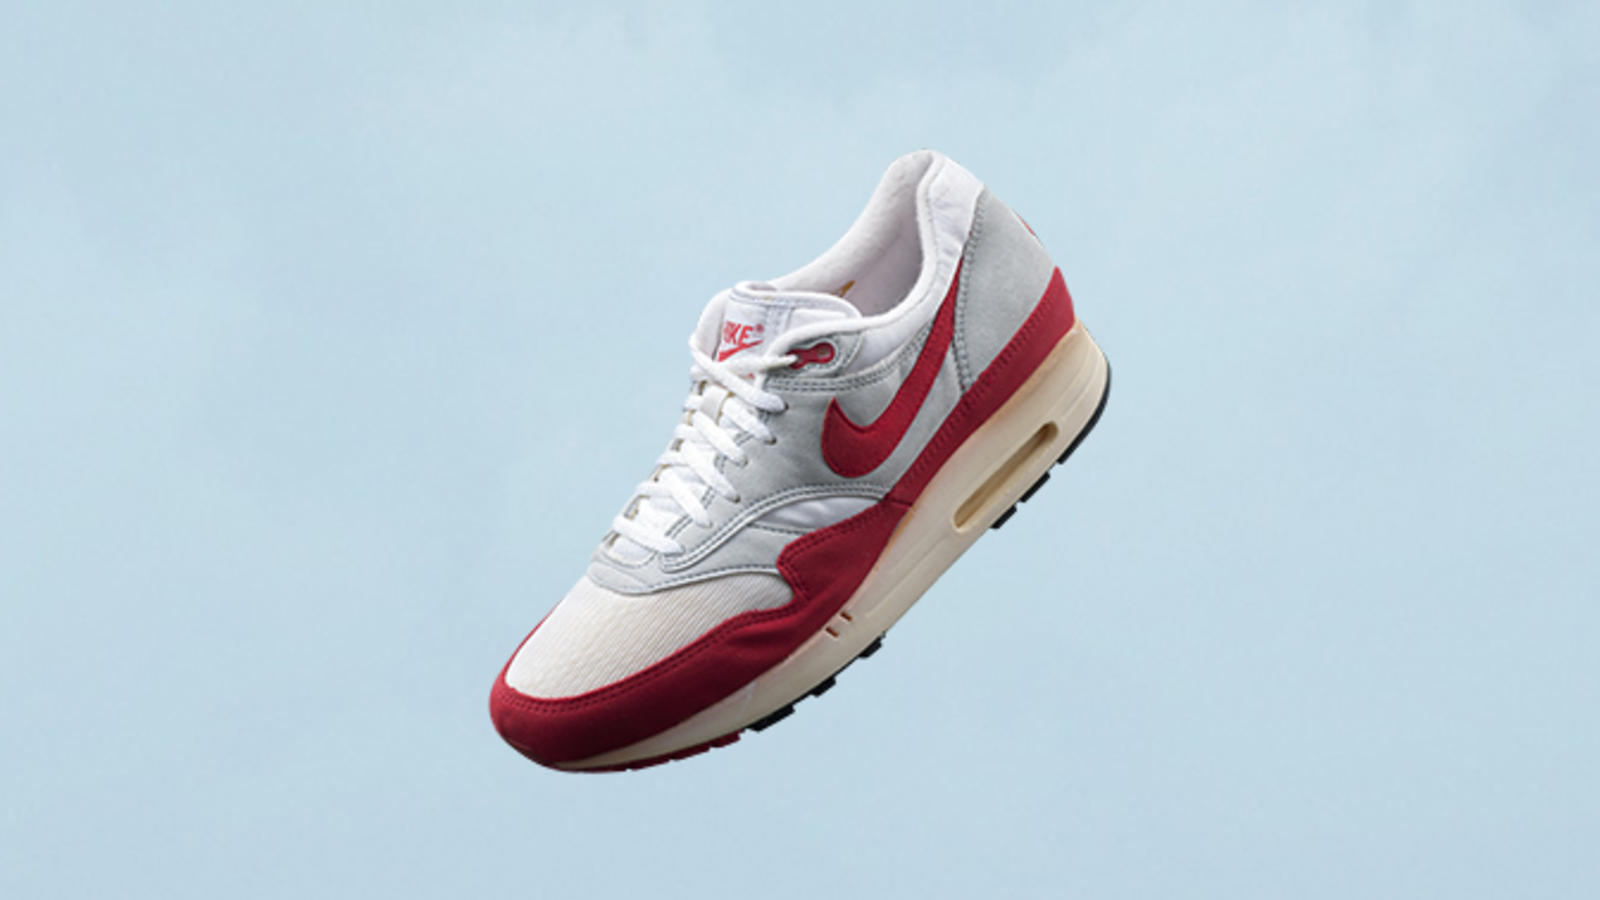 timeless design 235f9 8cd82 AIR MAX 1 OG -1987 Its the one that started it all. Designed by Tinker  Hatfield, the original Air Max 1 featured a traditional mesh and suede  construction ...